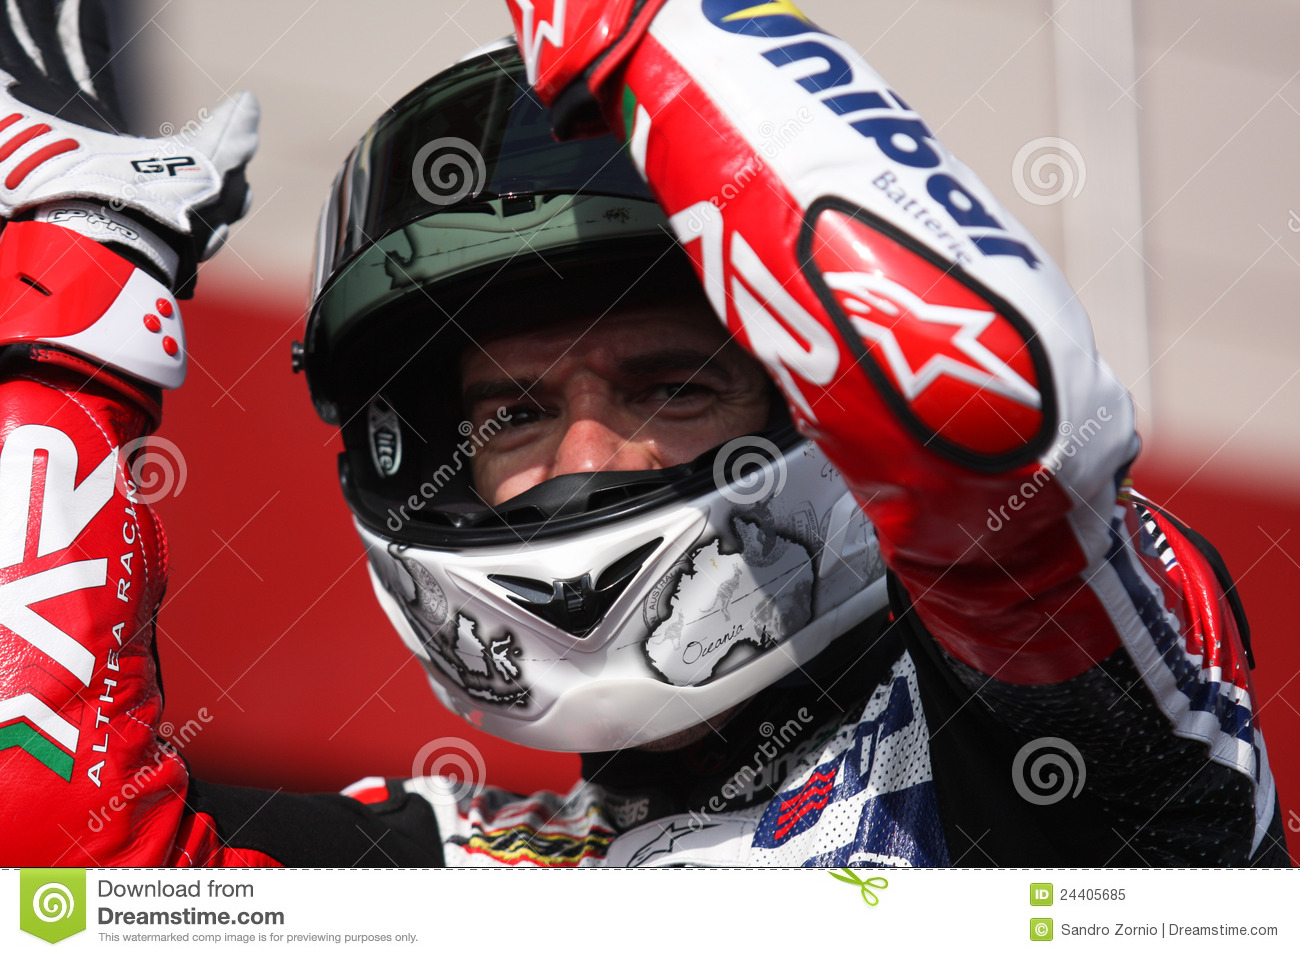 Carlos Checa - Ducati 1098R - Althea Racing